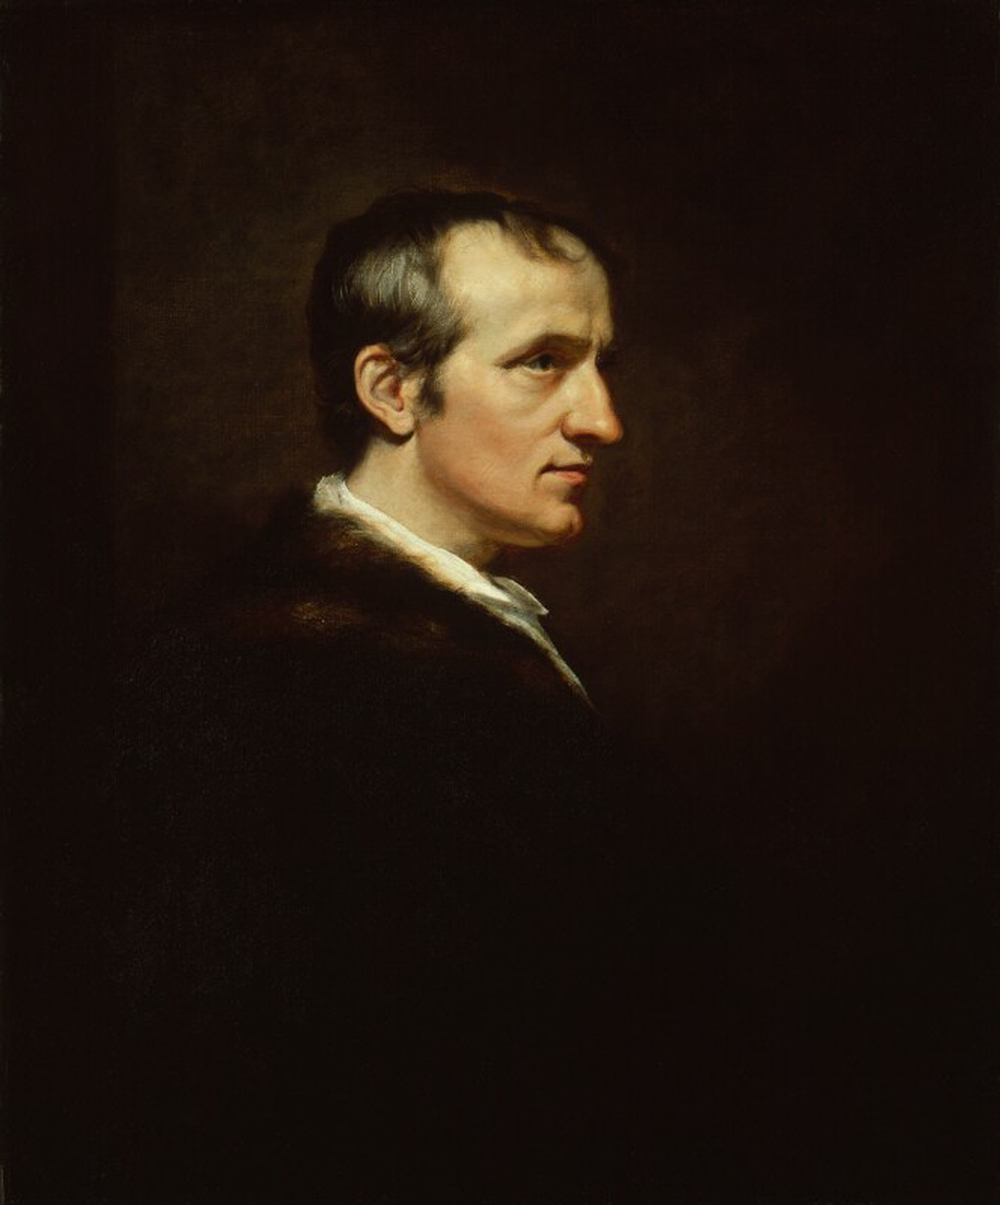 William Godwin, by James Northcote, 1802. National Portrait Gallery.